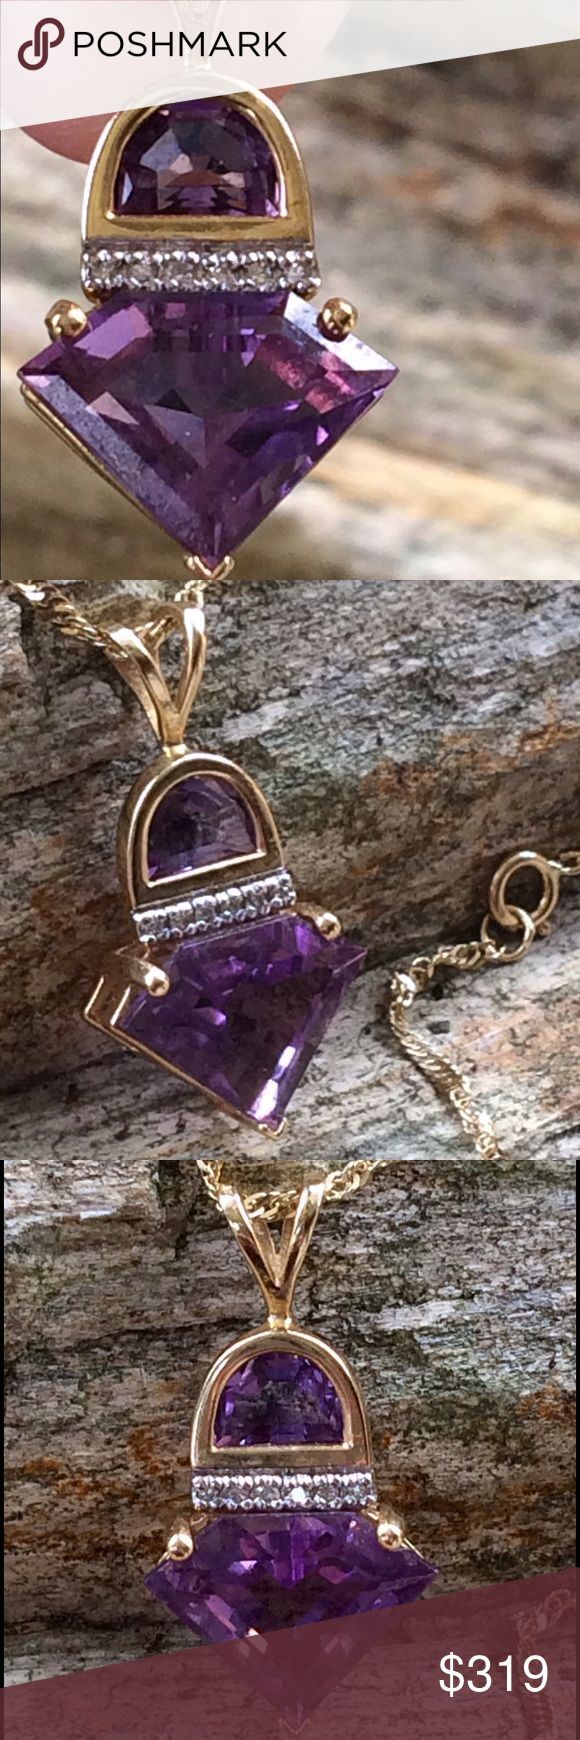 🆕14k Designer Fancy Cut Amethyst Diamond Necklace Large rich purple half moon cut and triangle cut Amethyst stones with diamonds set in 14k with a 14k gold chain!  Unique and majestic! Jewelry Necklaces